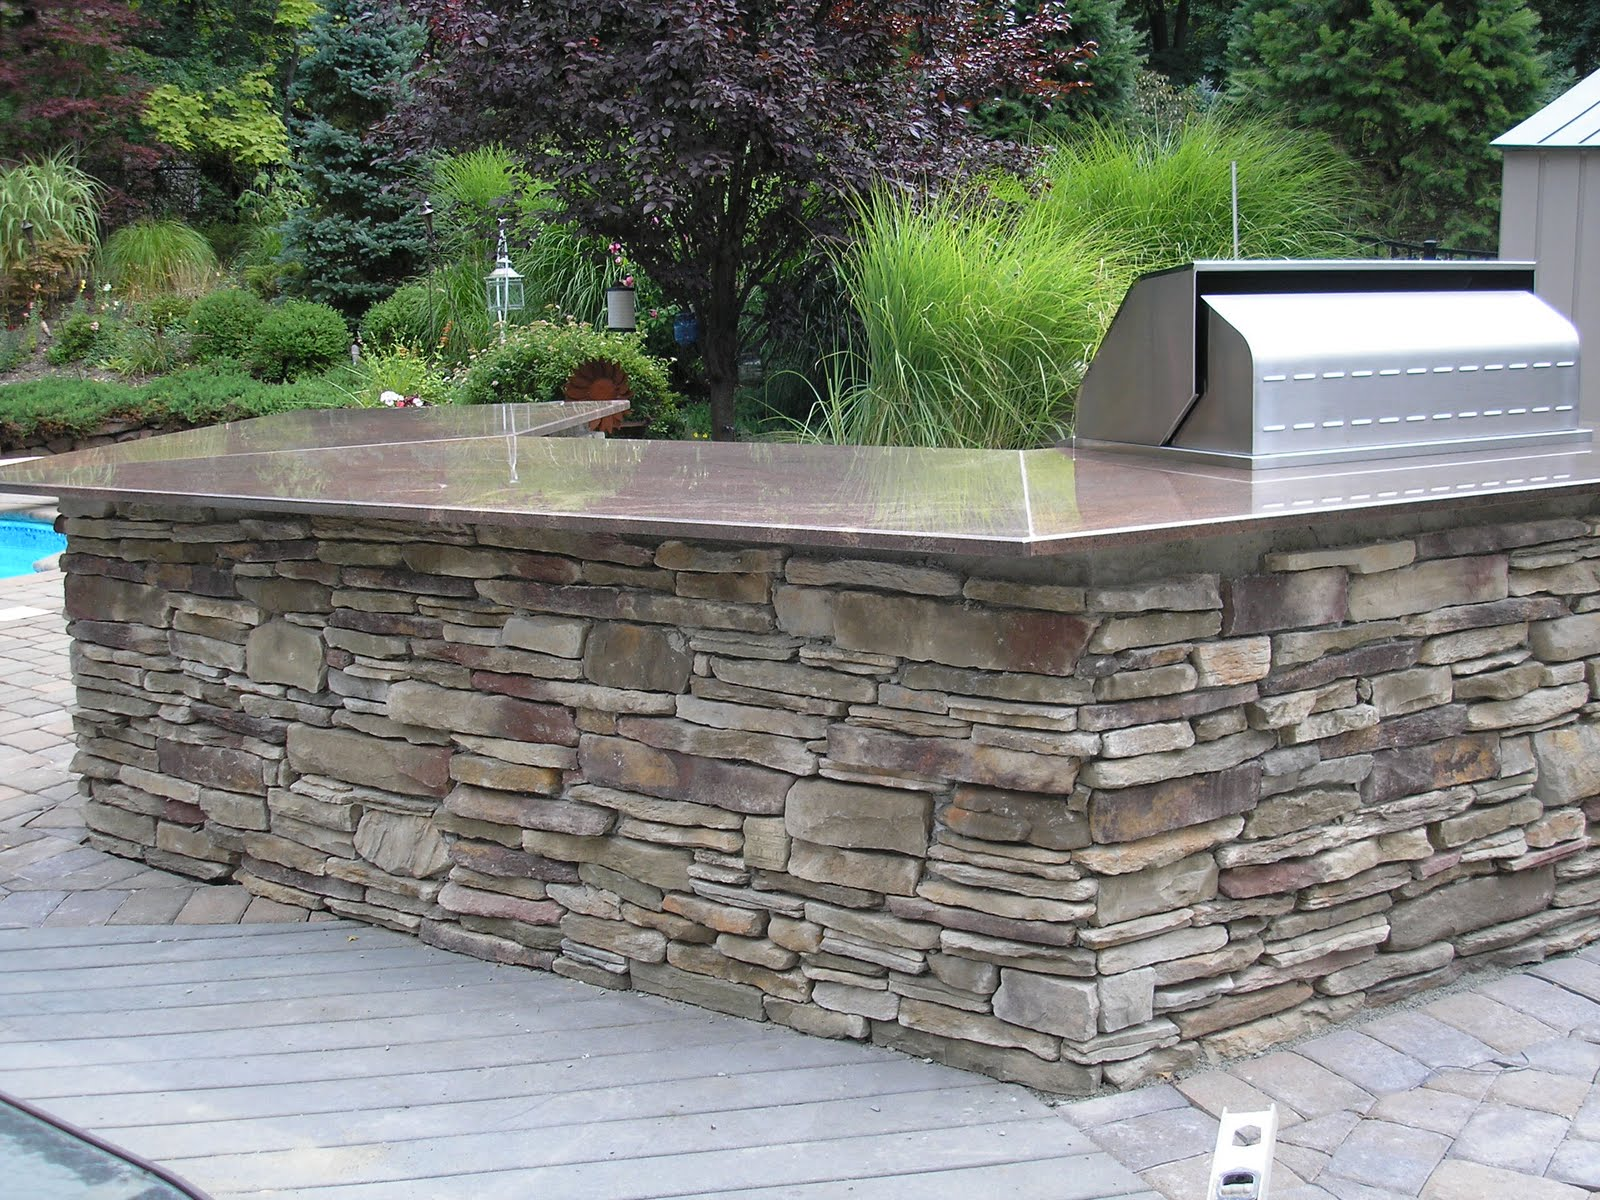 Utah Architectural Stone Fireplaces And Outdoor Kitchens. Best Floor Covering For Basement Concrete. Adding A Basement To Your Home. Tile On Concrete Basement Floor. Carpet Pad In Basement. Two Door Cinema Club Basement. Basement Suite Decorating Ideas. Basement Cinder Block Paint. Basement Door Cover